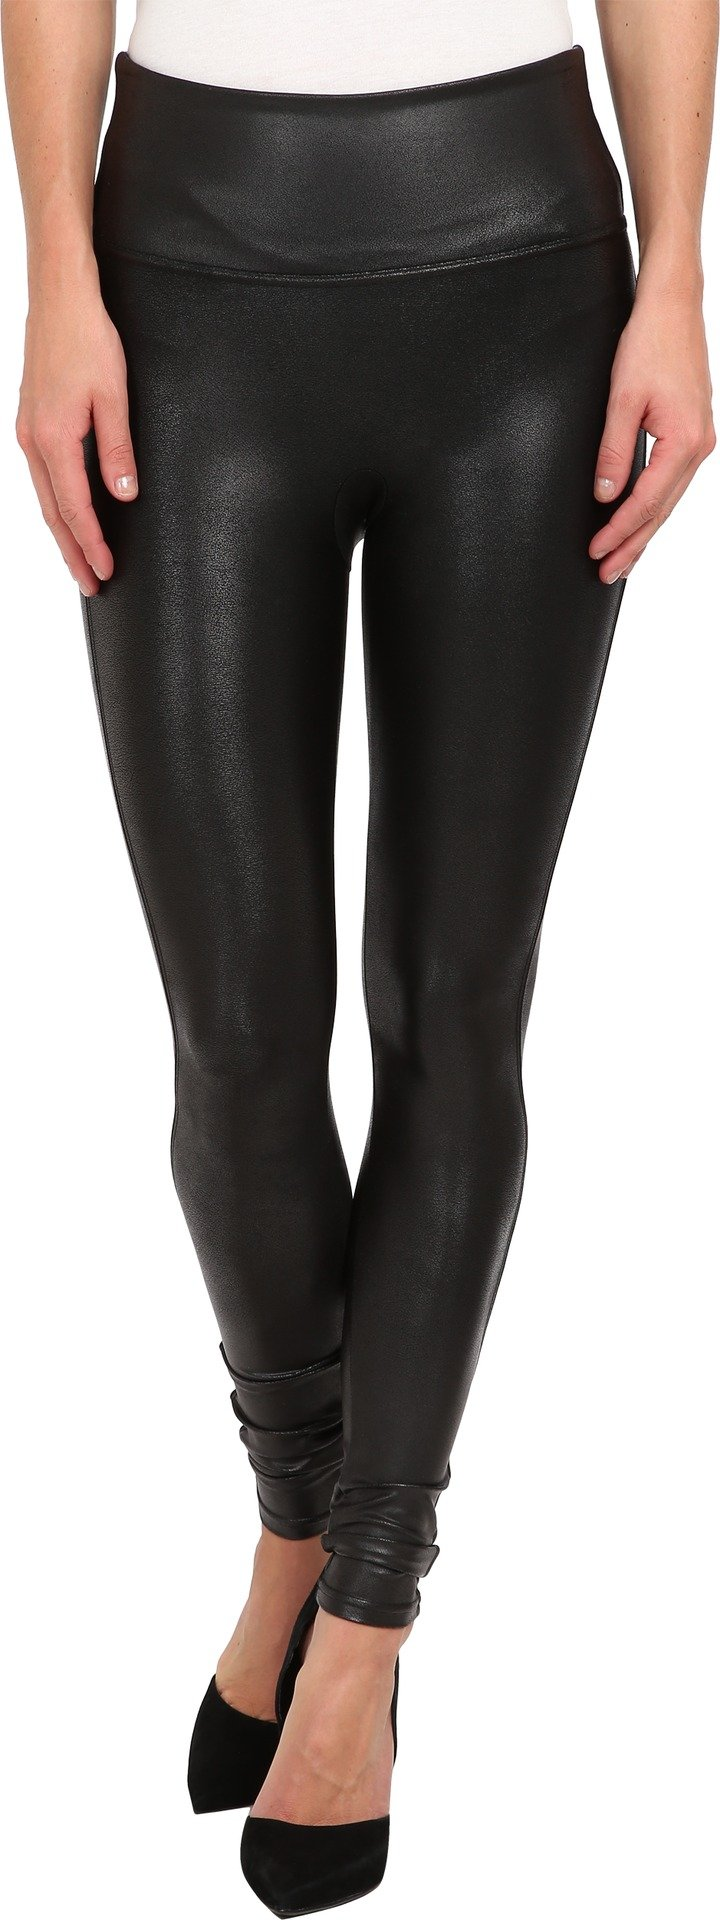 Spanx Women's Ready-to-Wow!? Faux Leather Leggings Black MD X 30 by SPANX